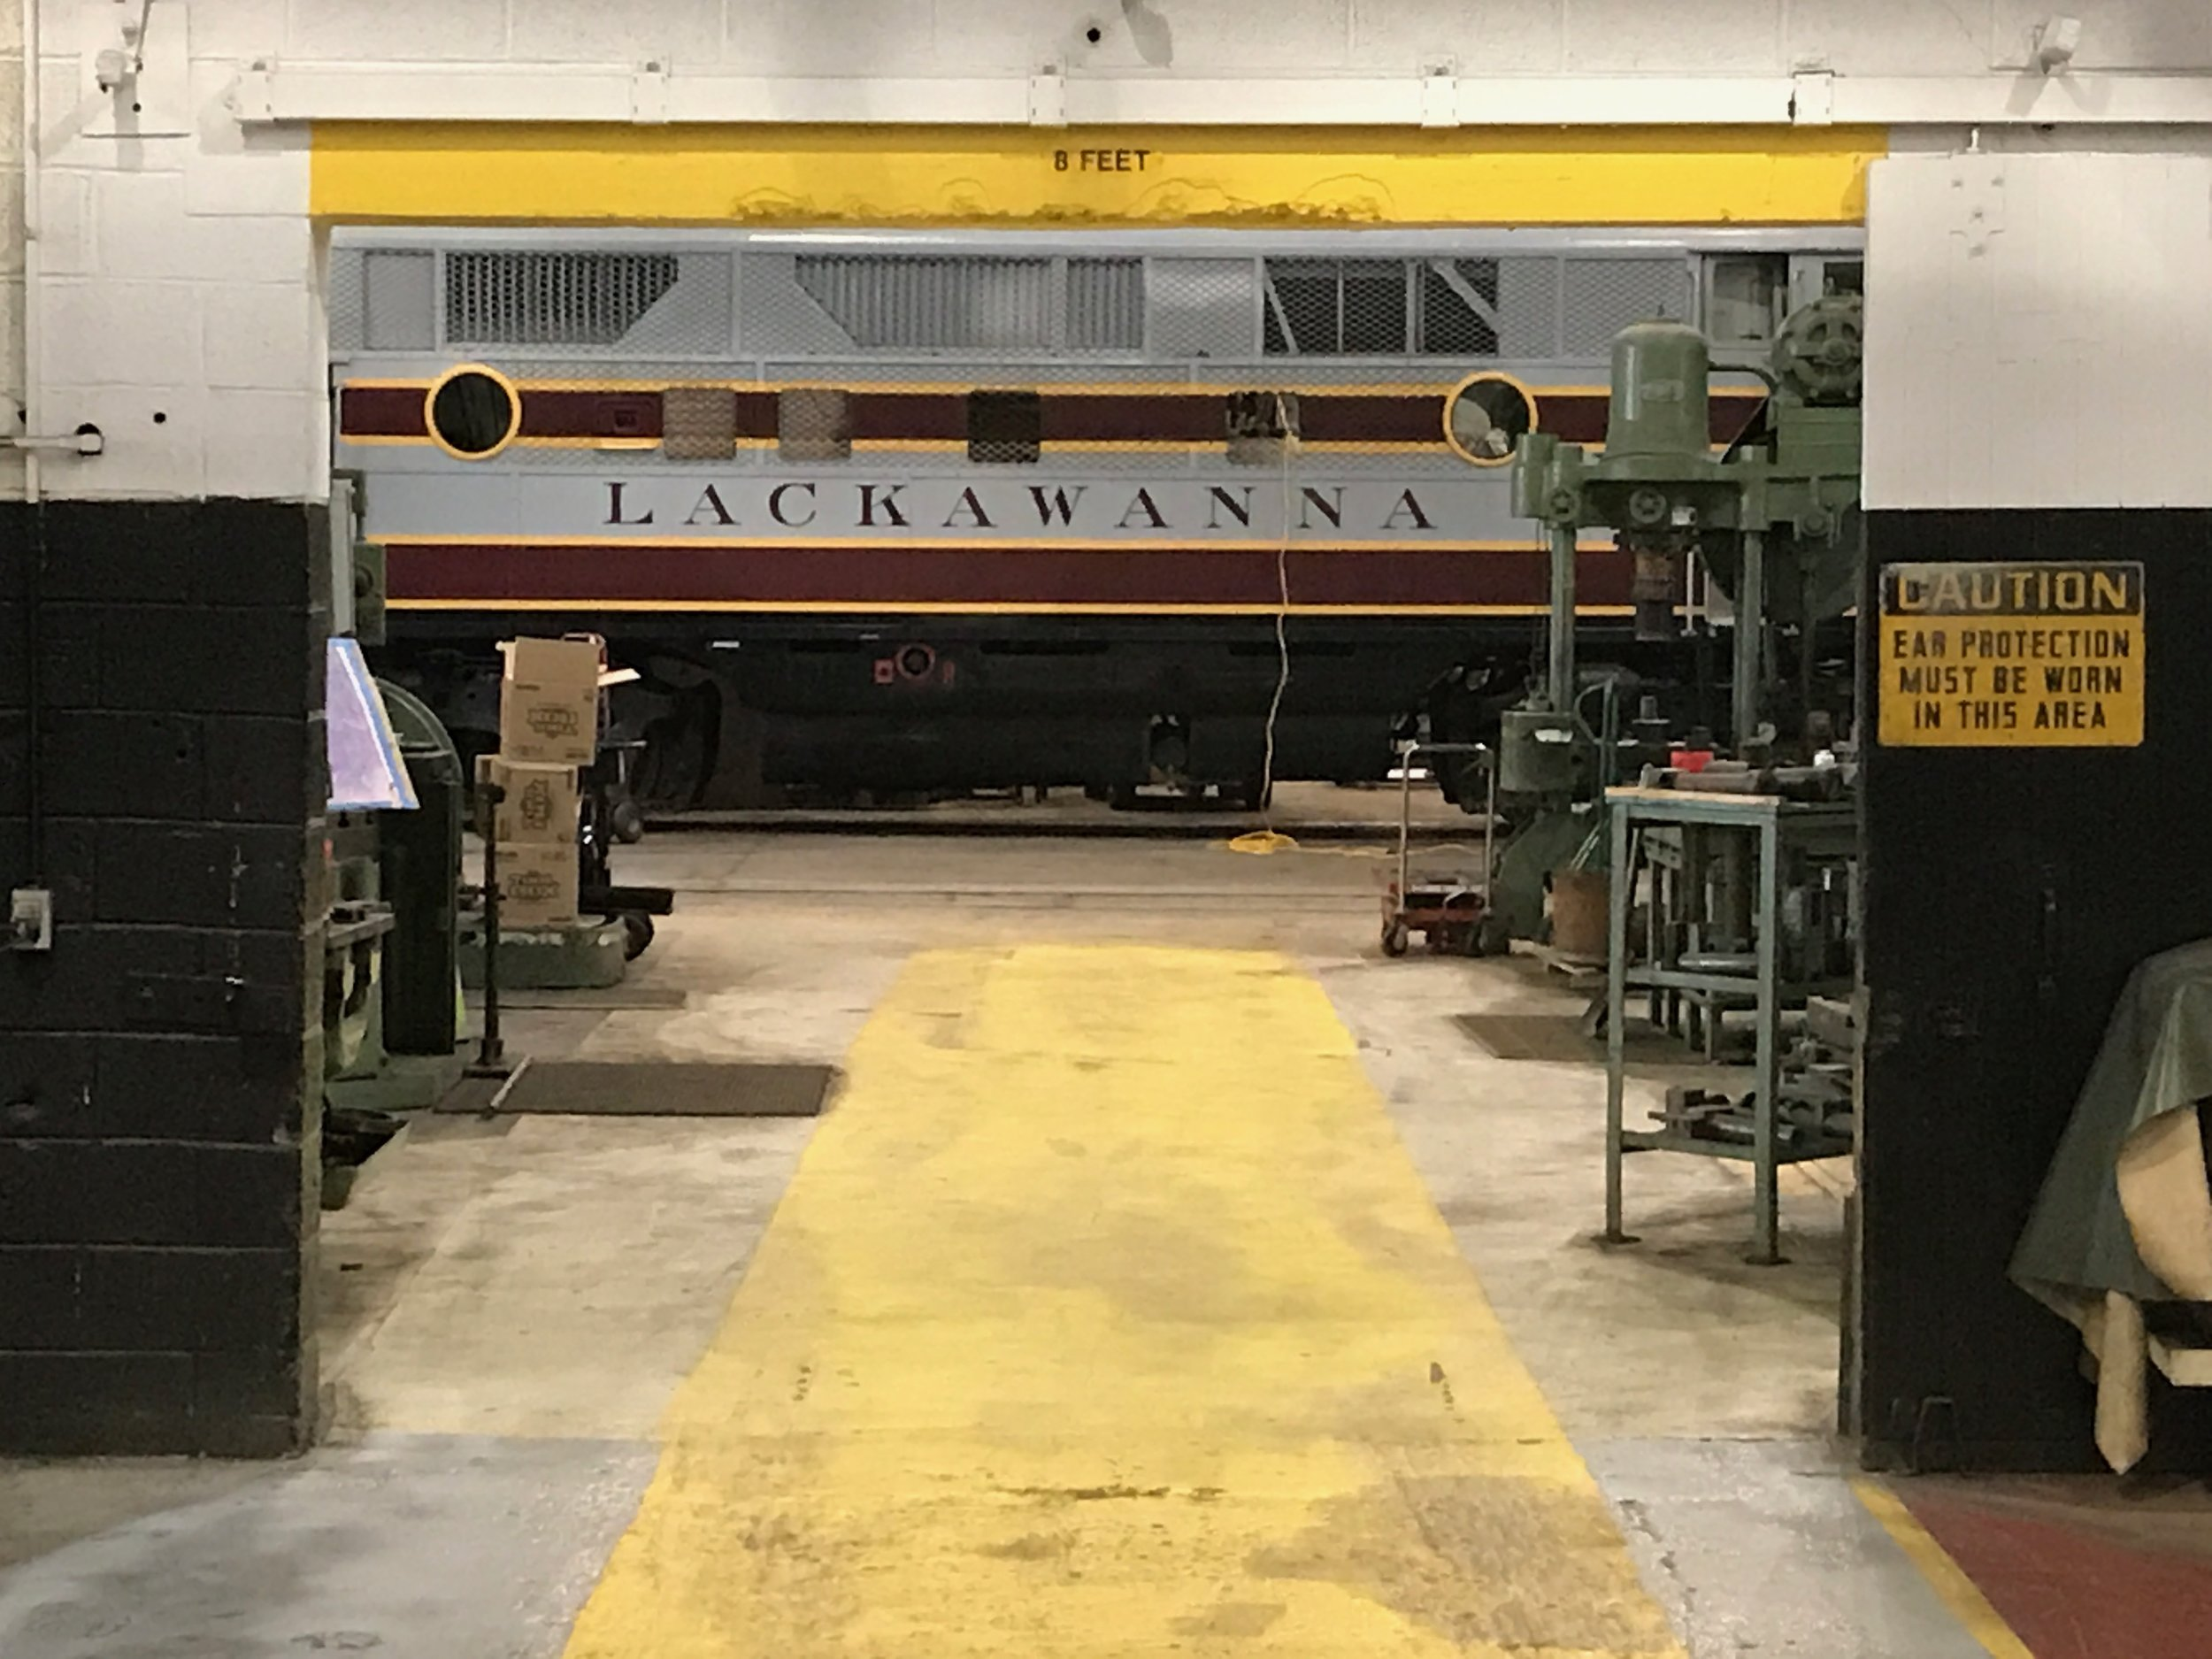 663 shown in Scranton Shops, a facility purpose-built for working on this type of locomotive.